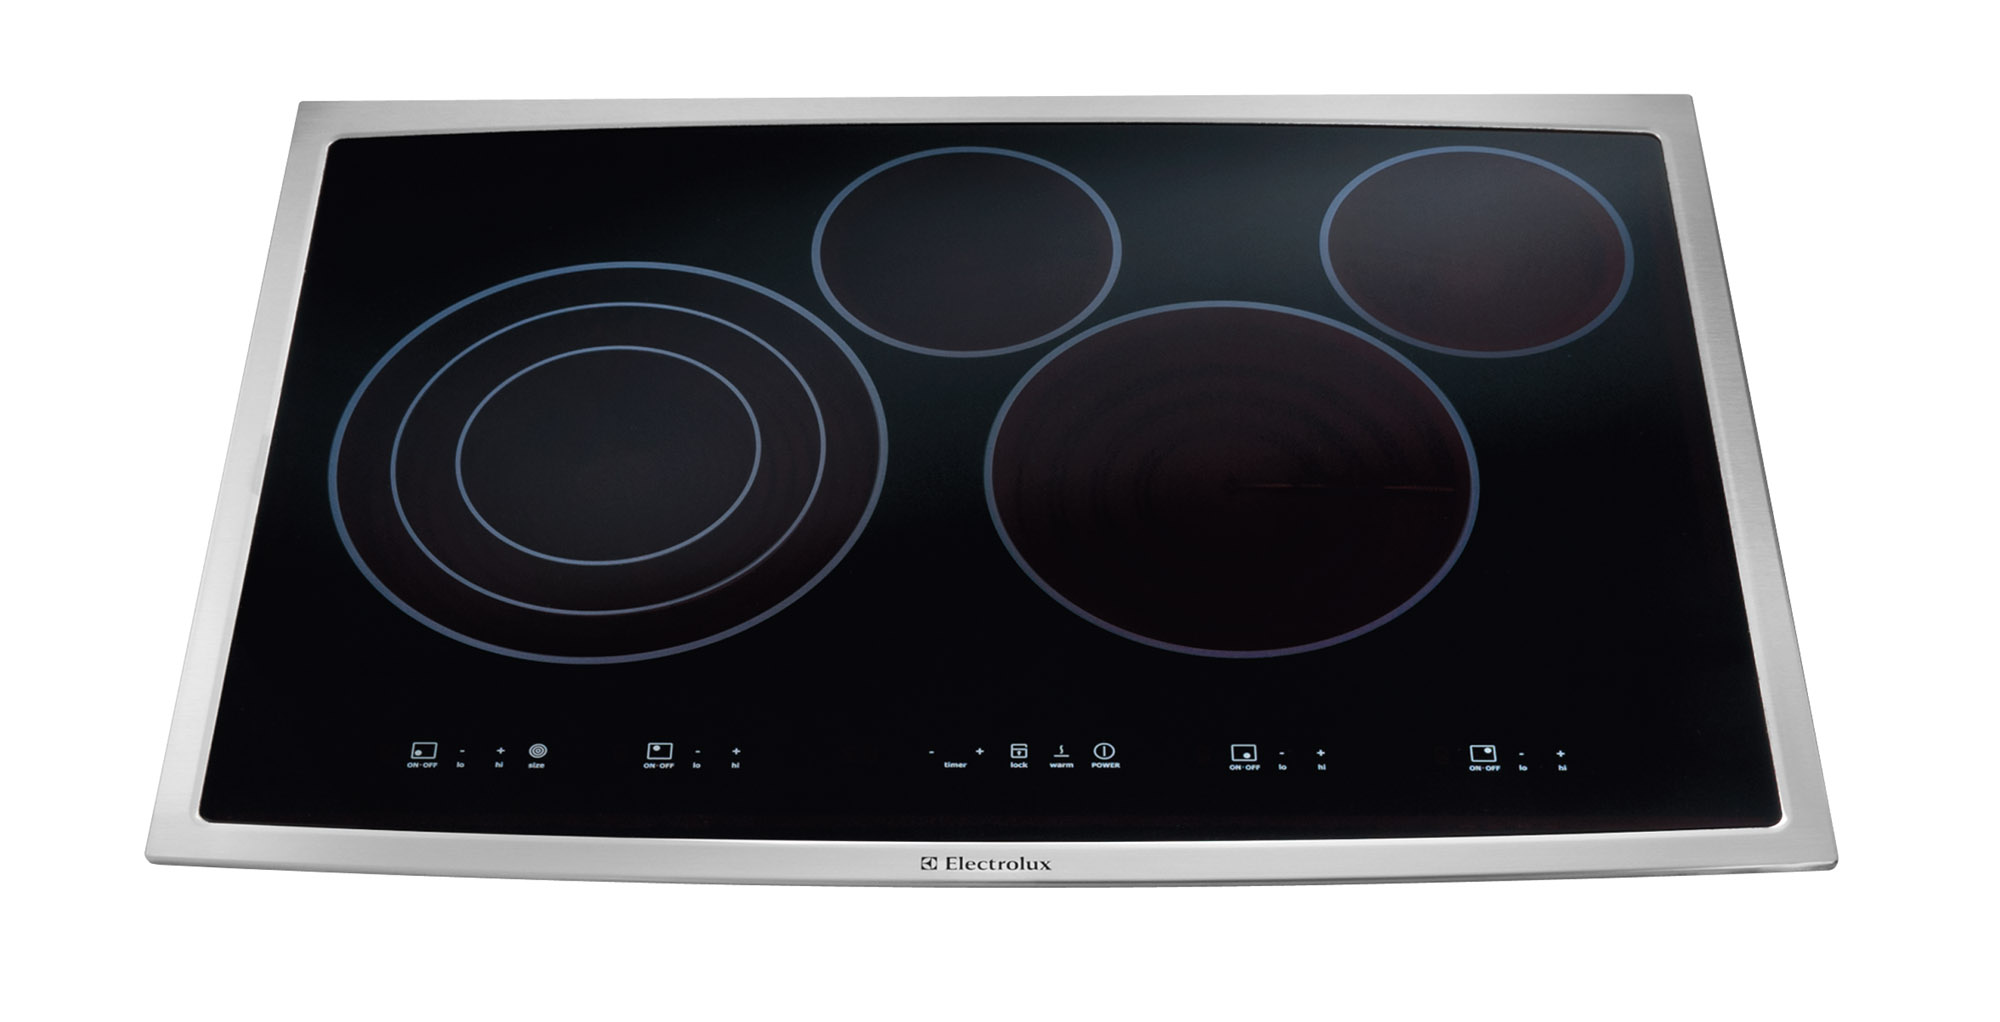 Electrolux 30 Electric Cooktop Stainless Steel Ei30ec45ks Home And Oven Wiring Instructions